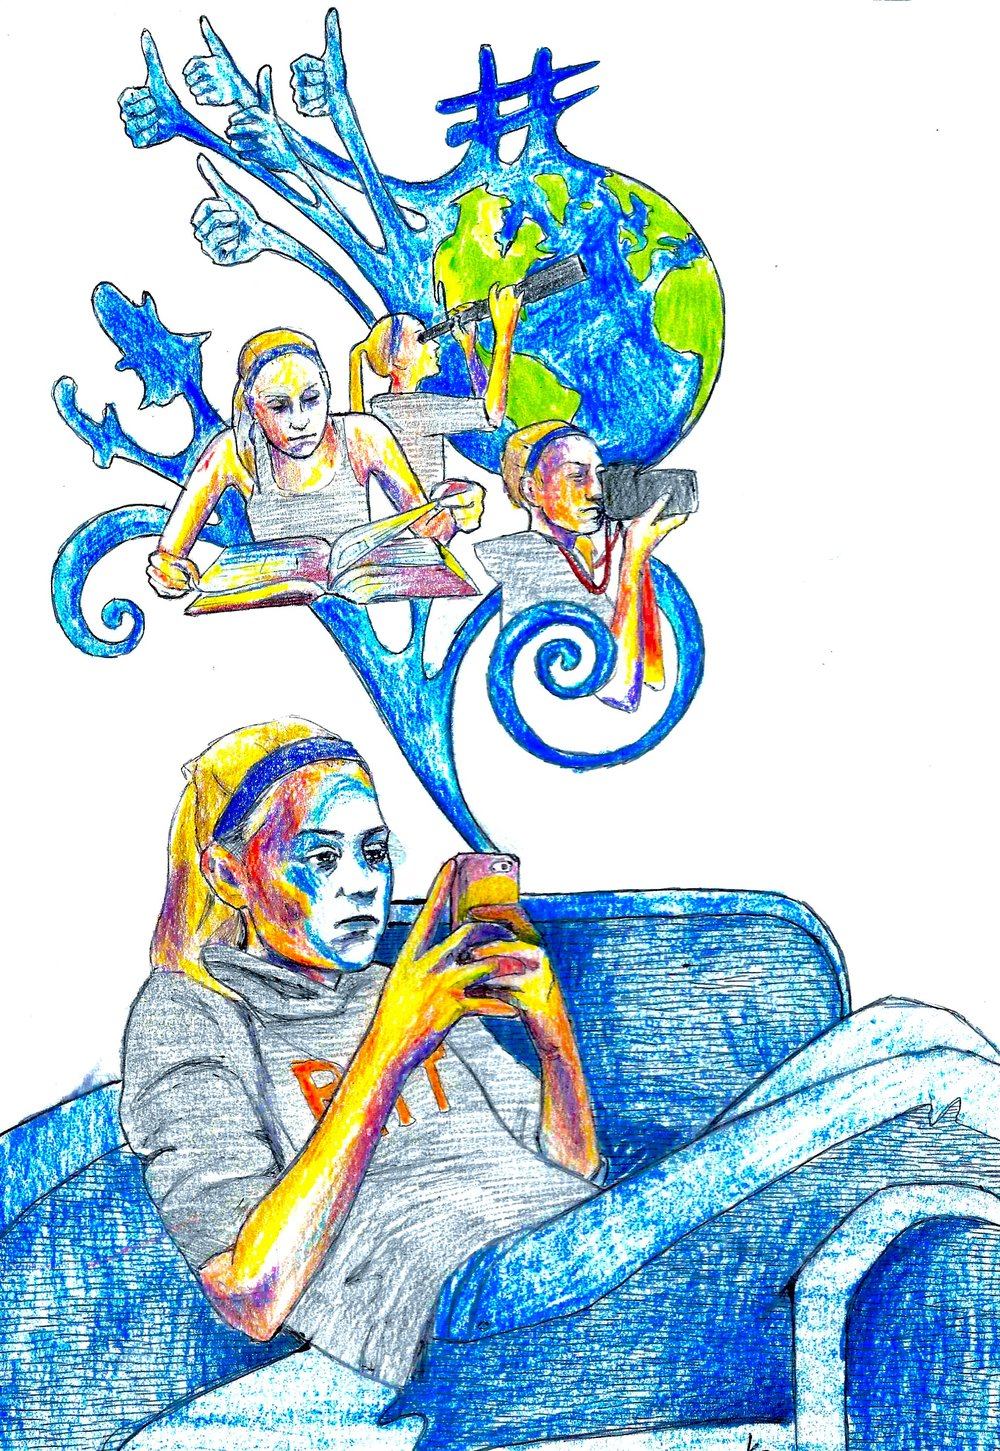 Phones These Days 2015, bic pen & colored pencil December issue of RIT's Reporter Magazine.